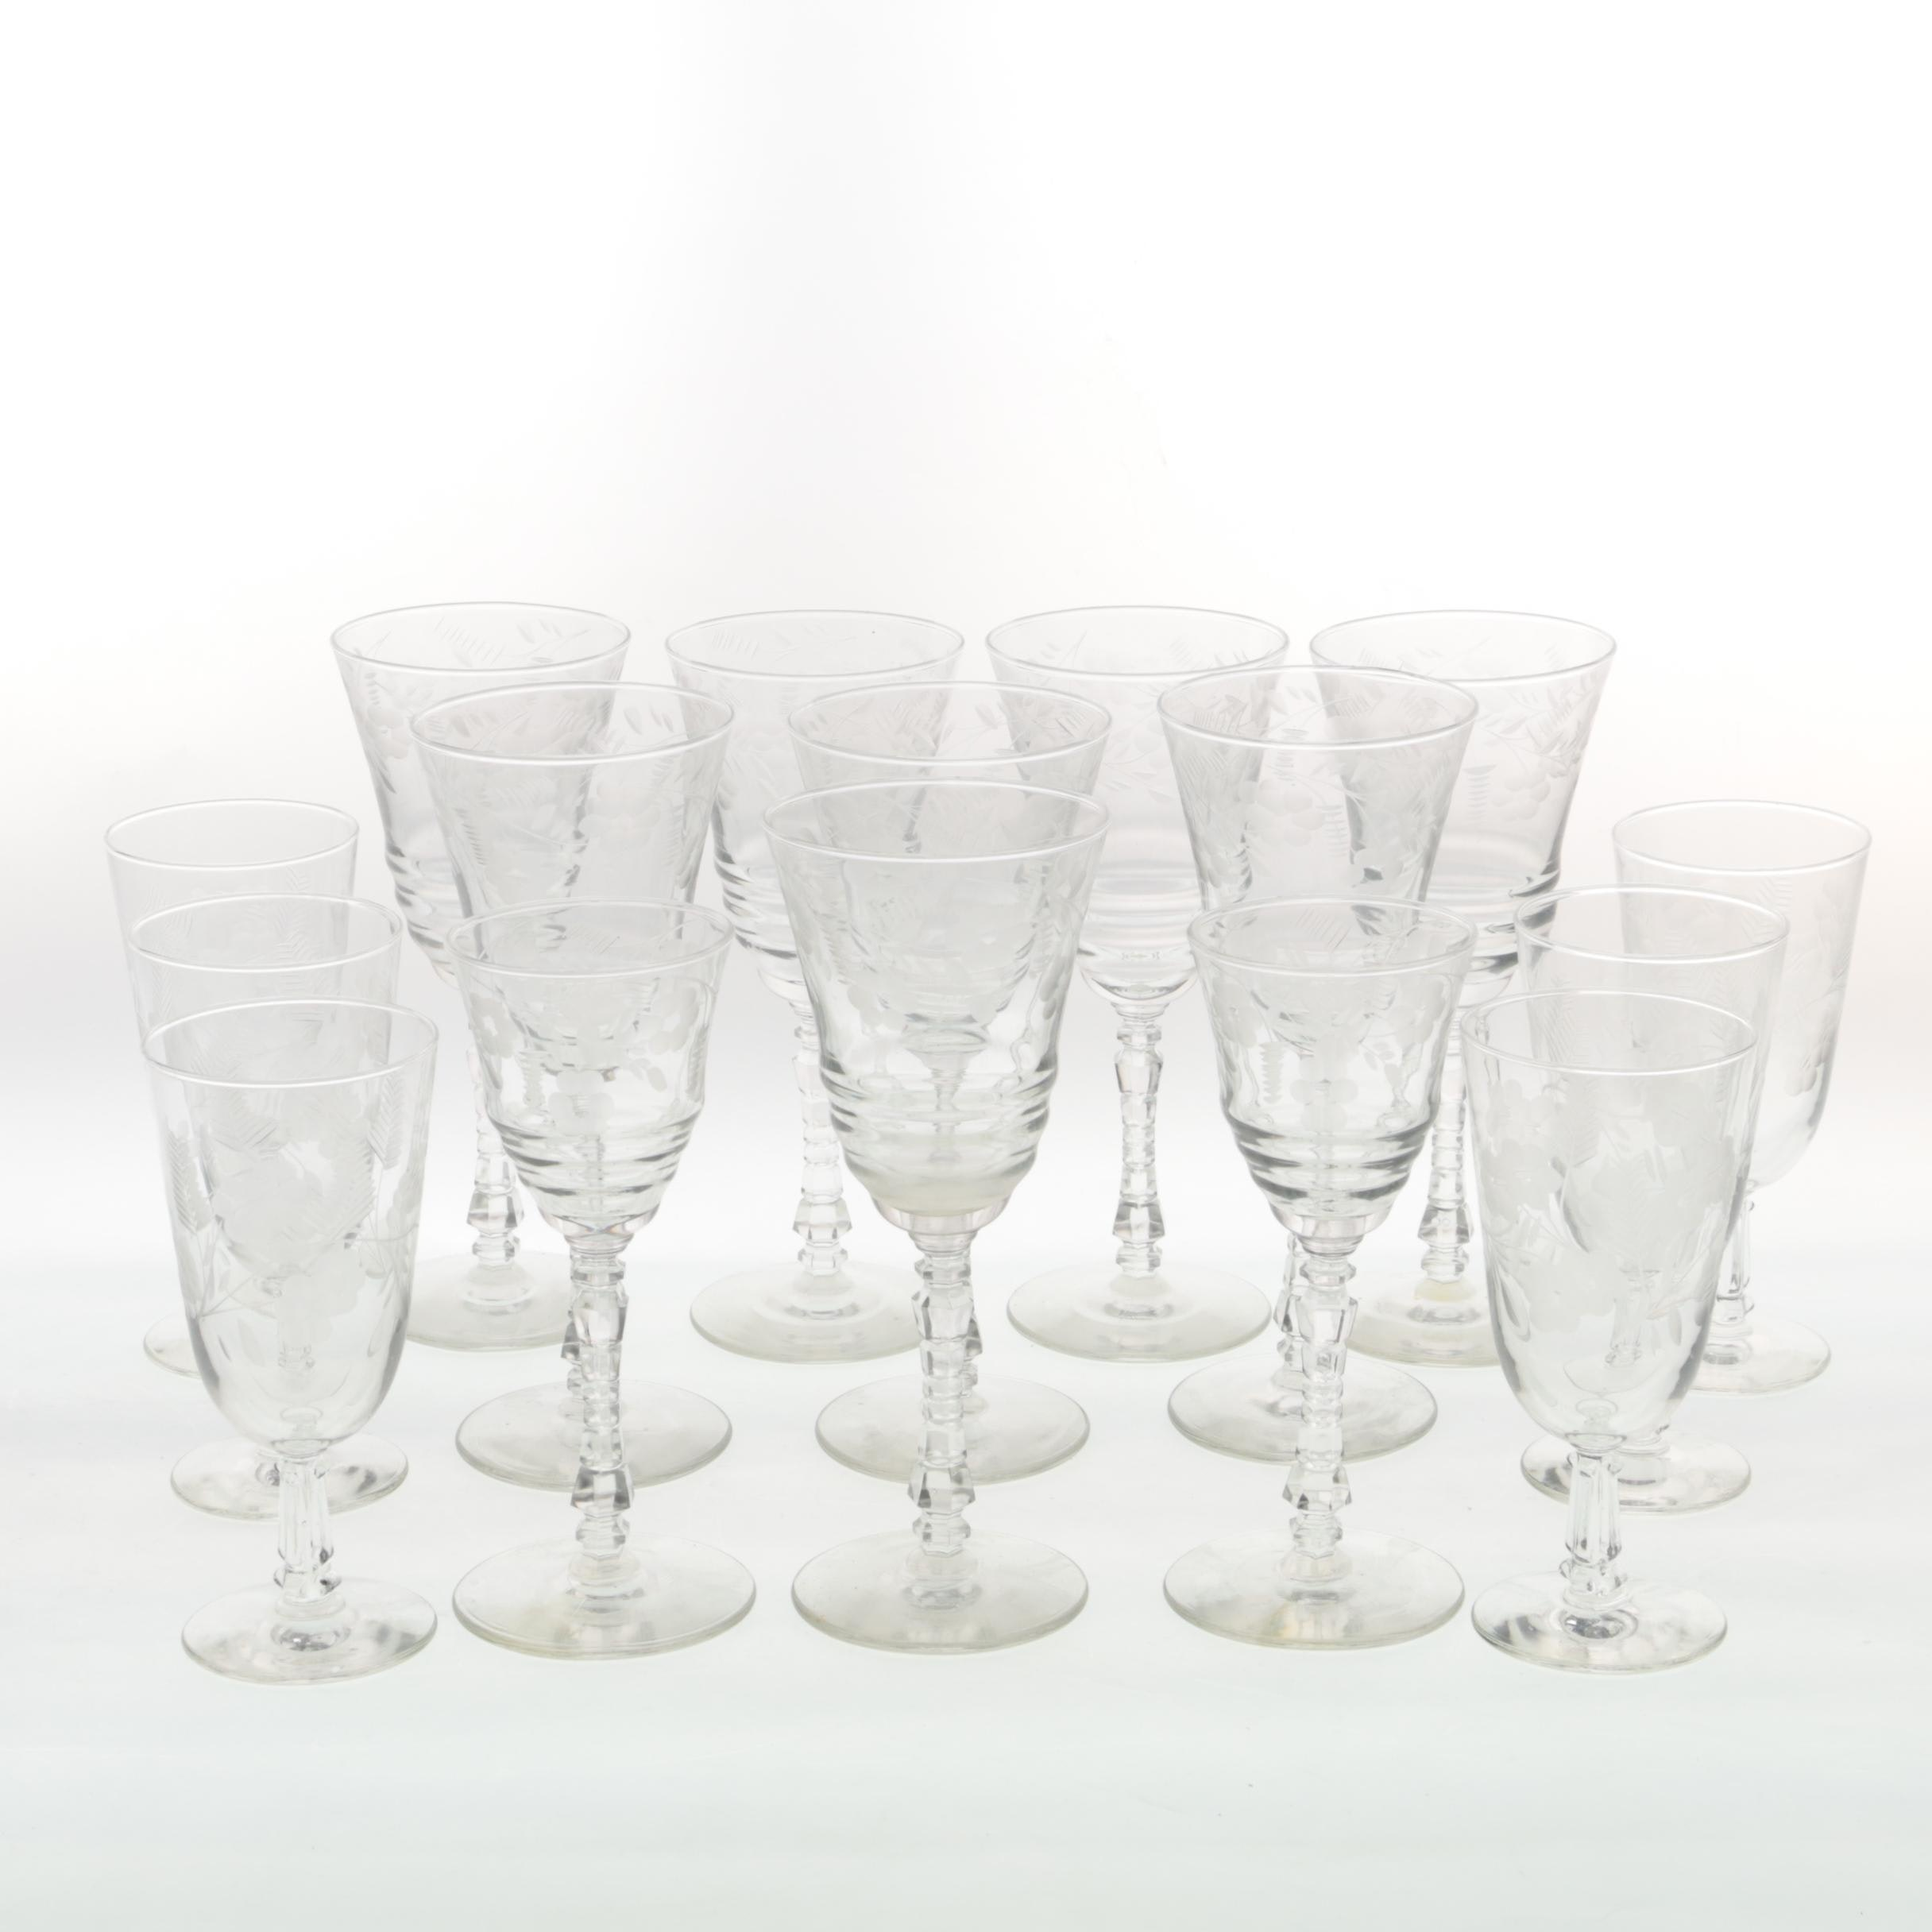 Collection of Seventeen Pieces of Glass Stemware